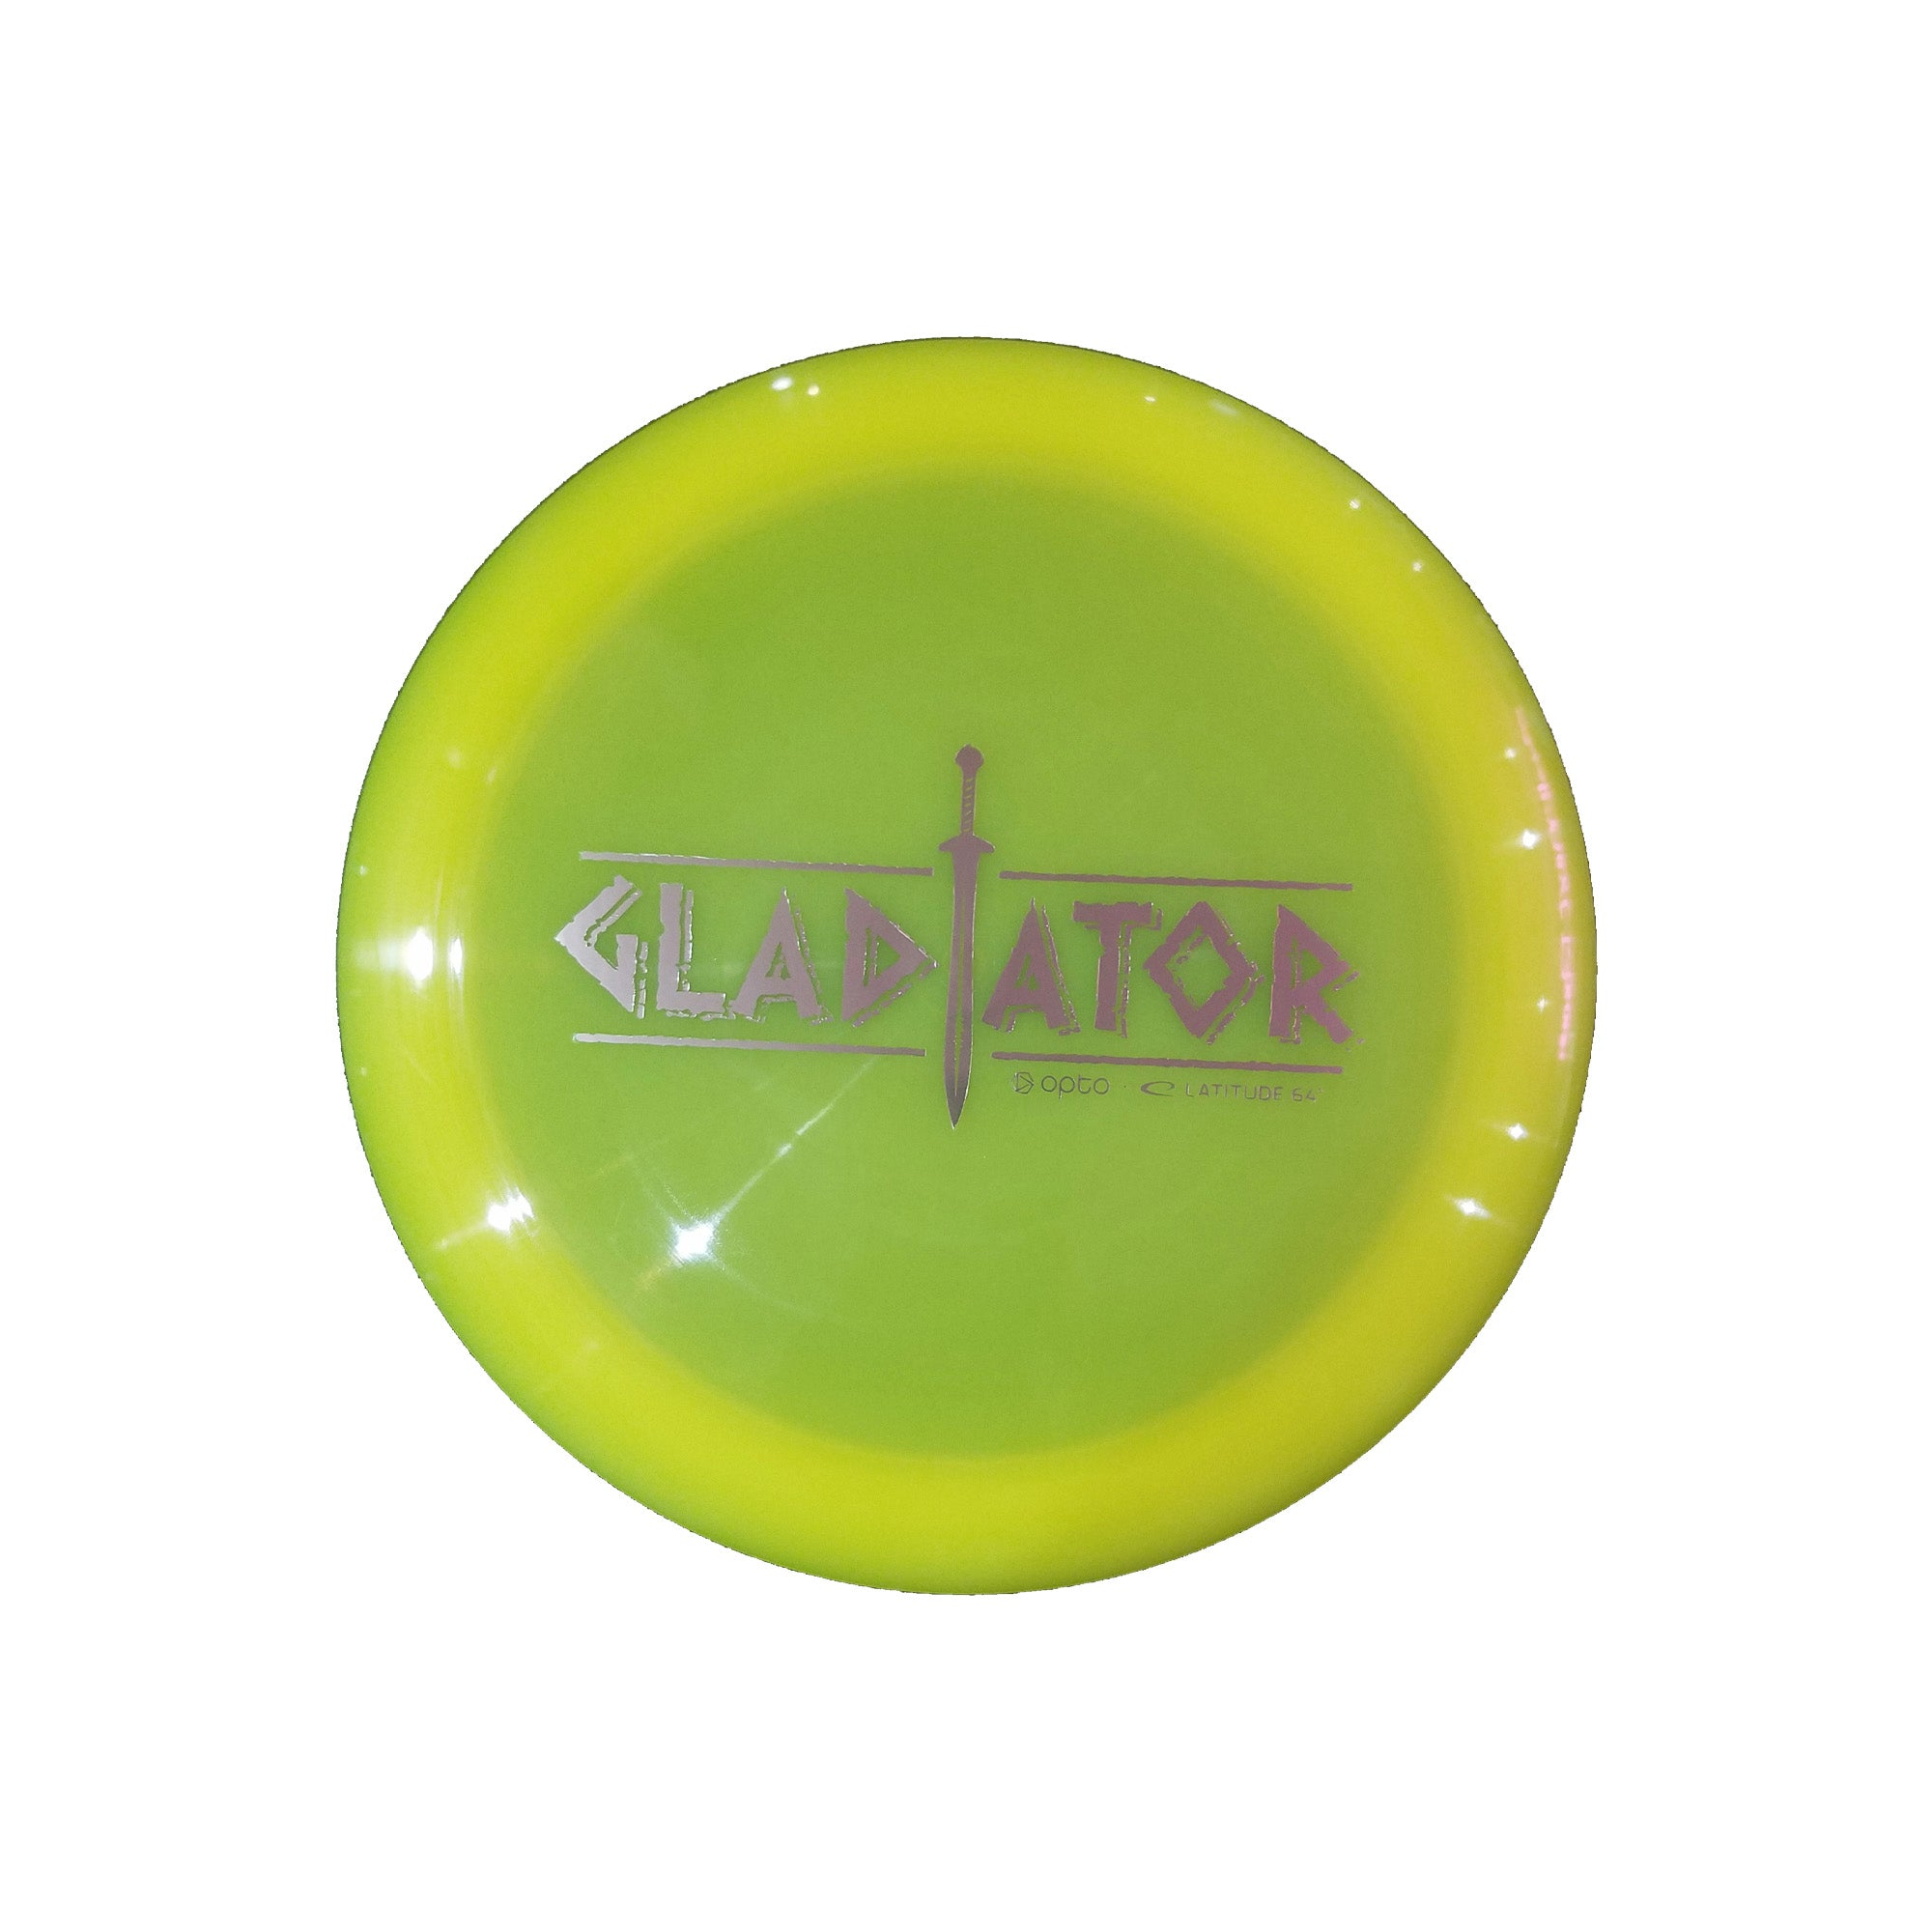 Latitude 64 Opto Gladiator Limited Edition Stamp Distance Driver Disc - 172g